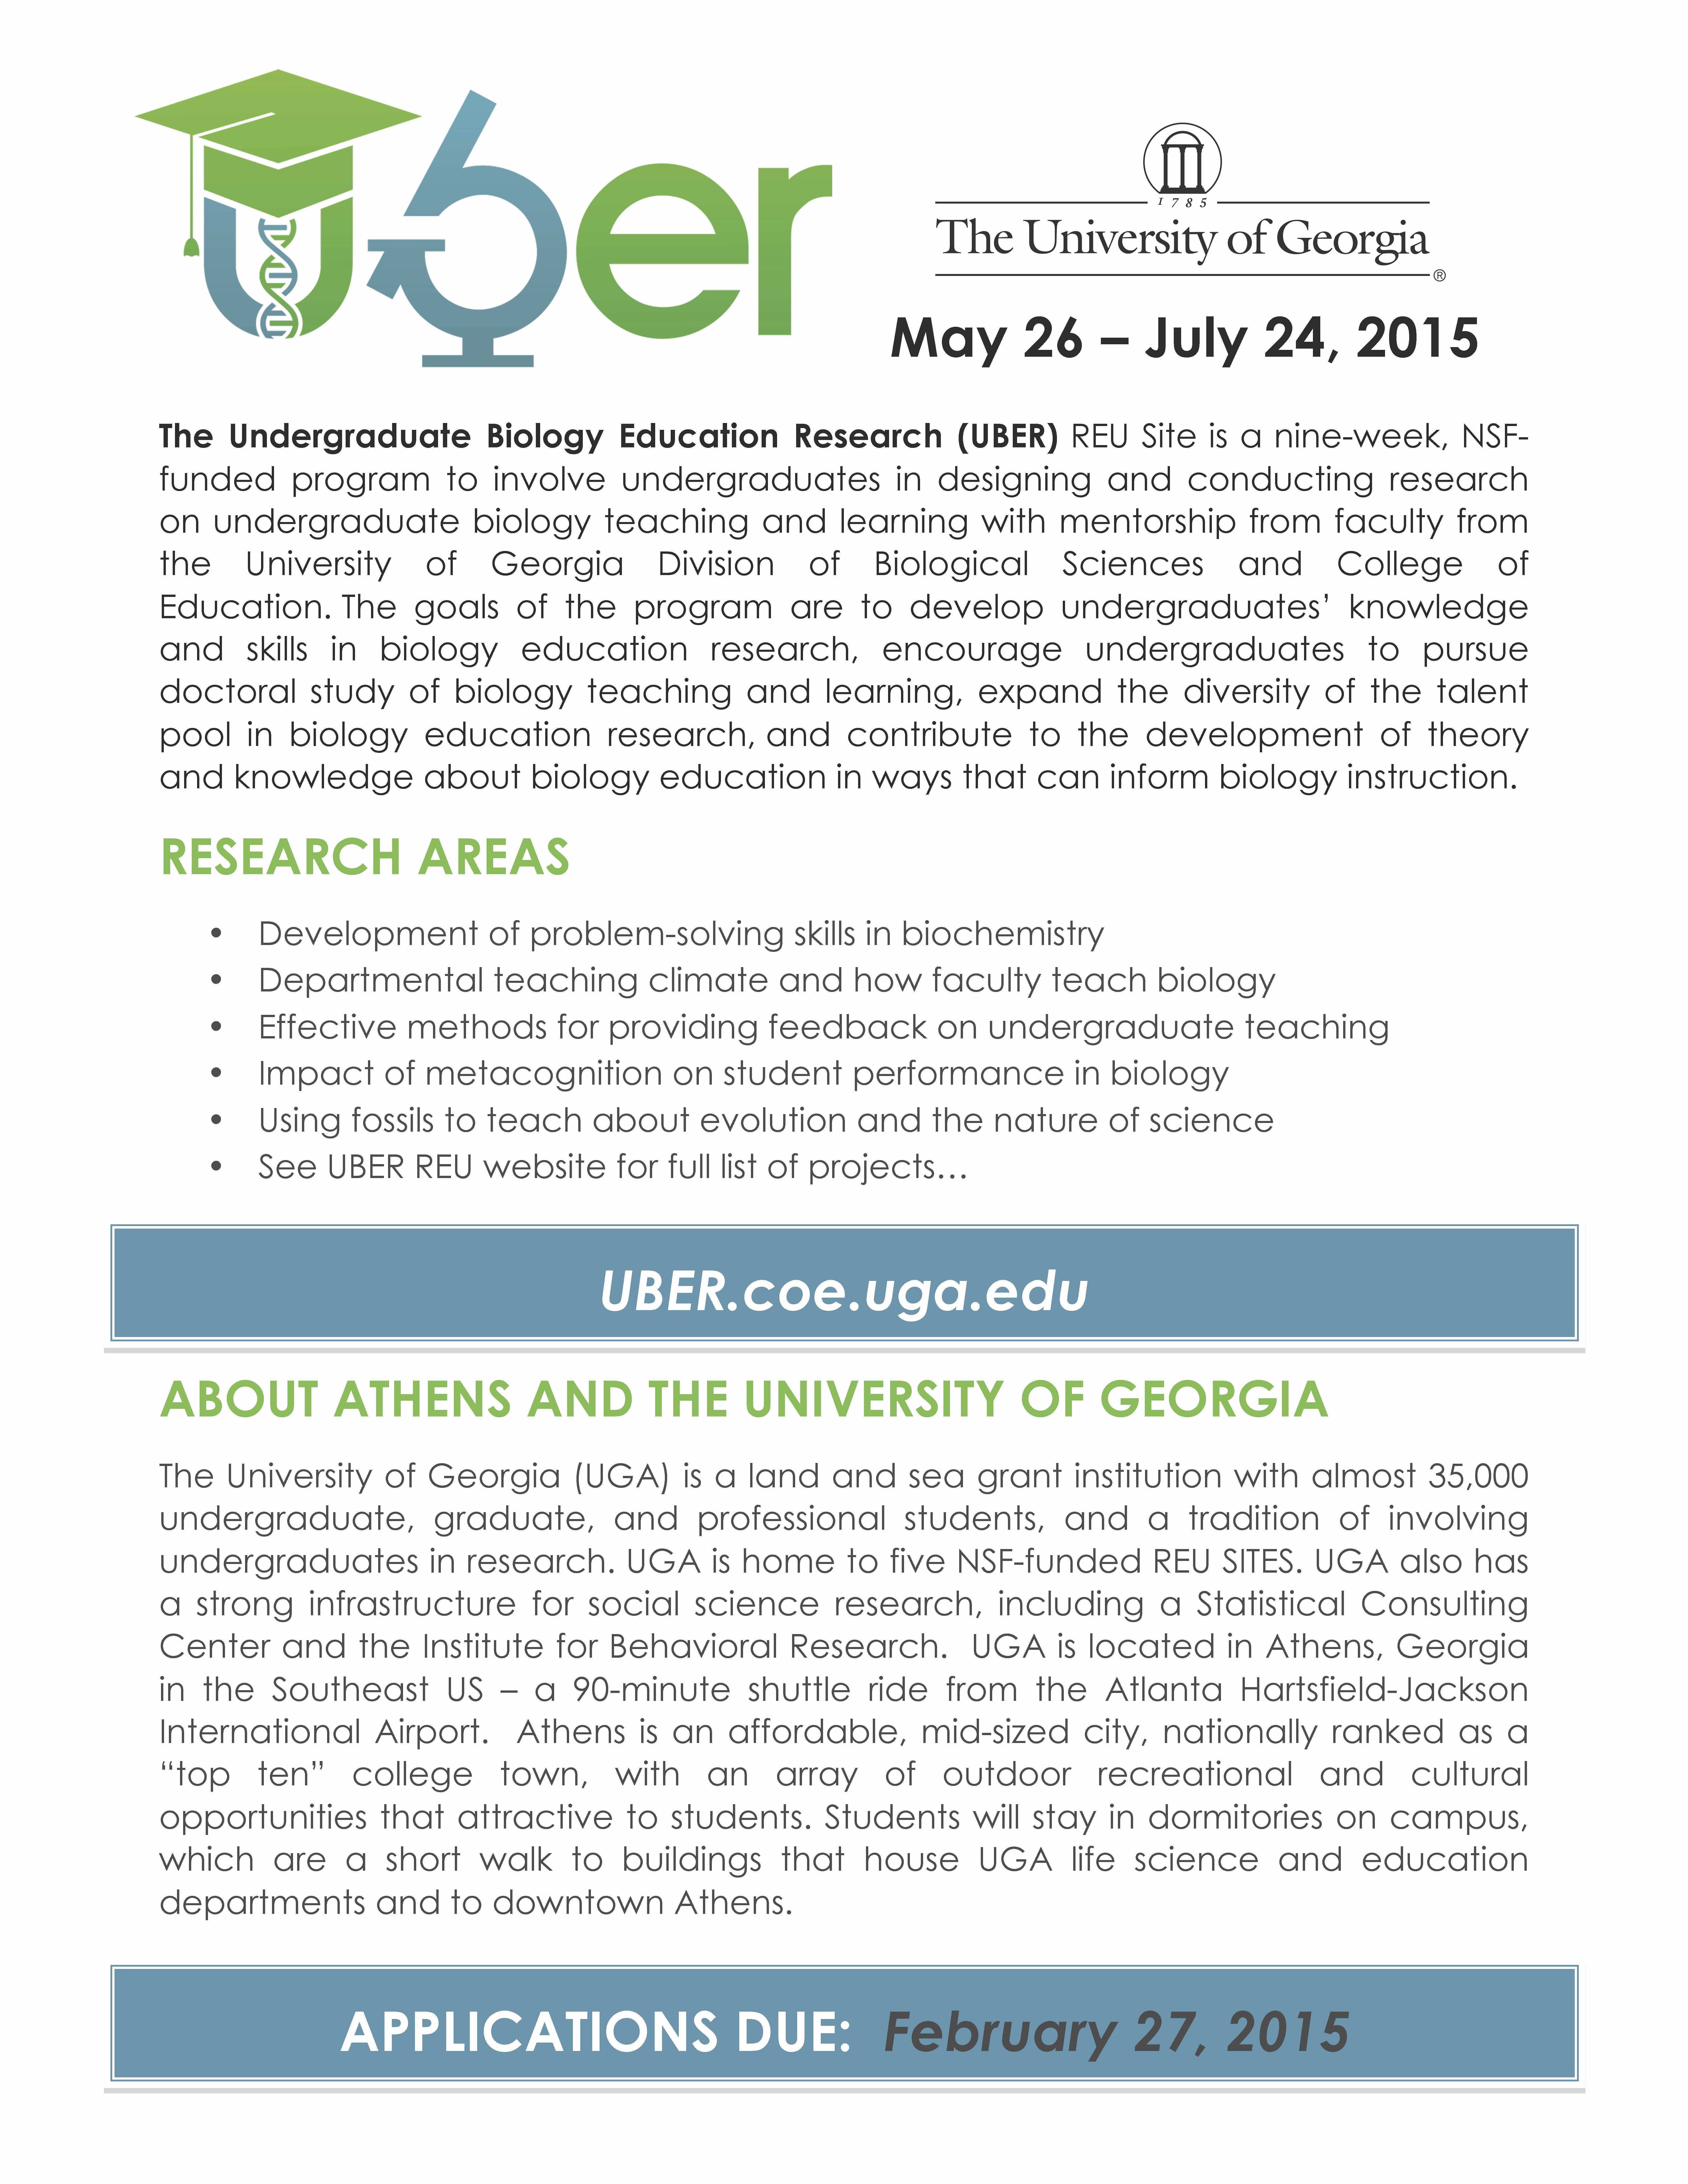 Undergraduate Biology Education Research (UBER) REU Site at